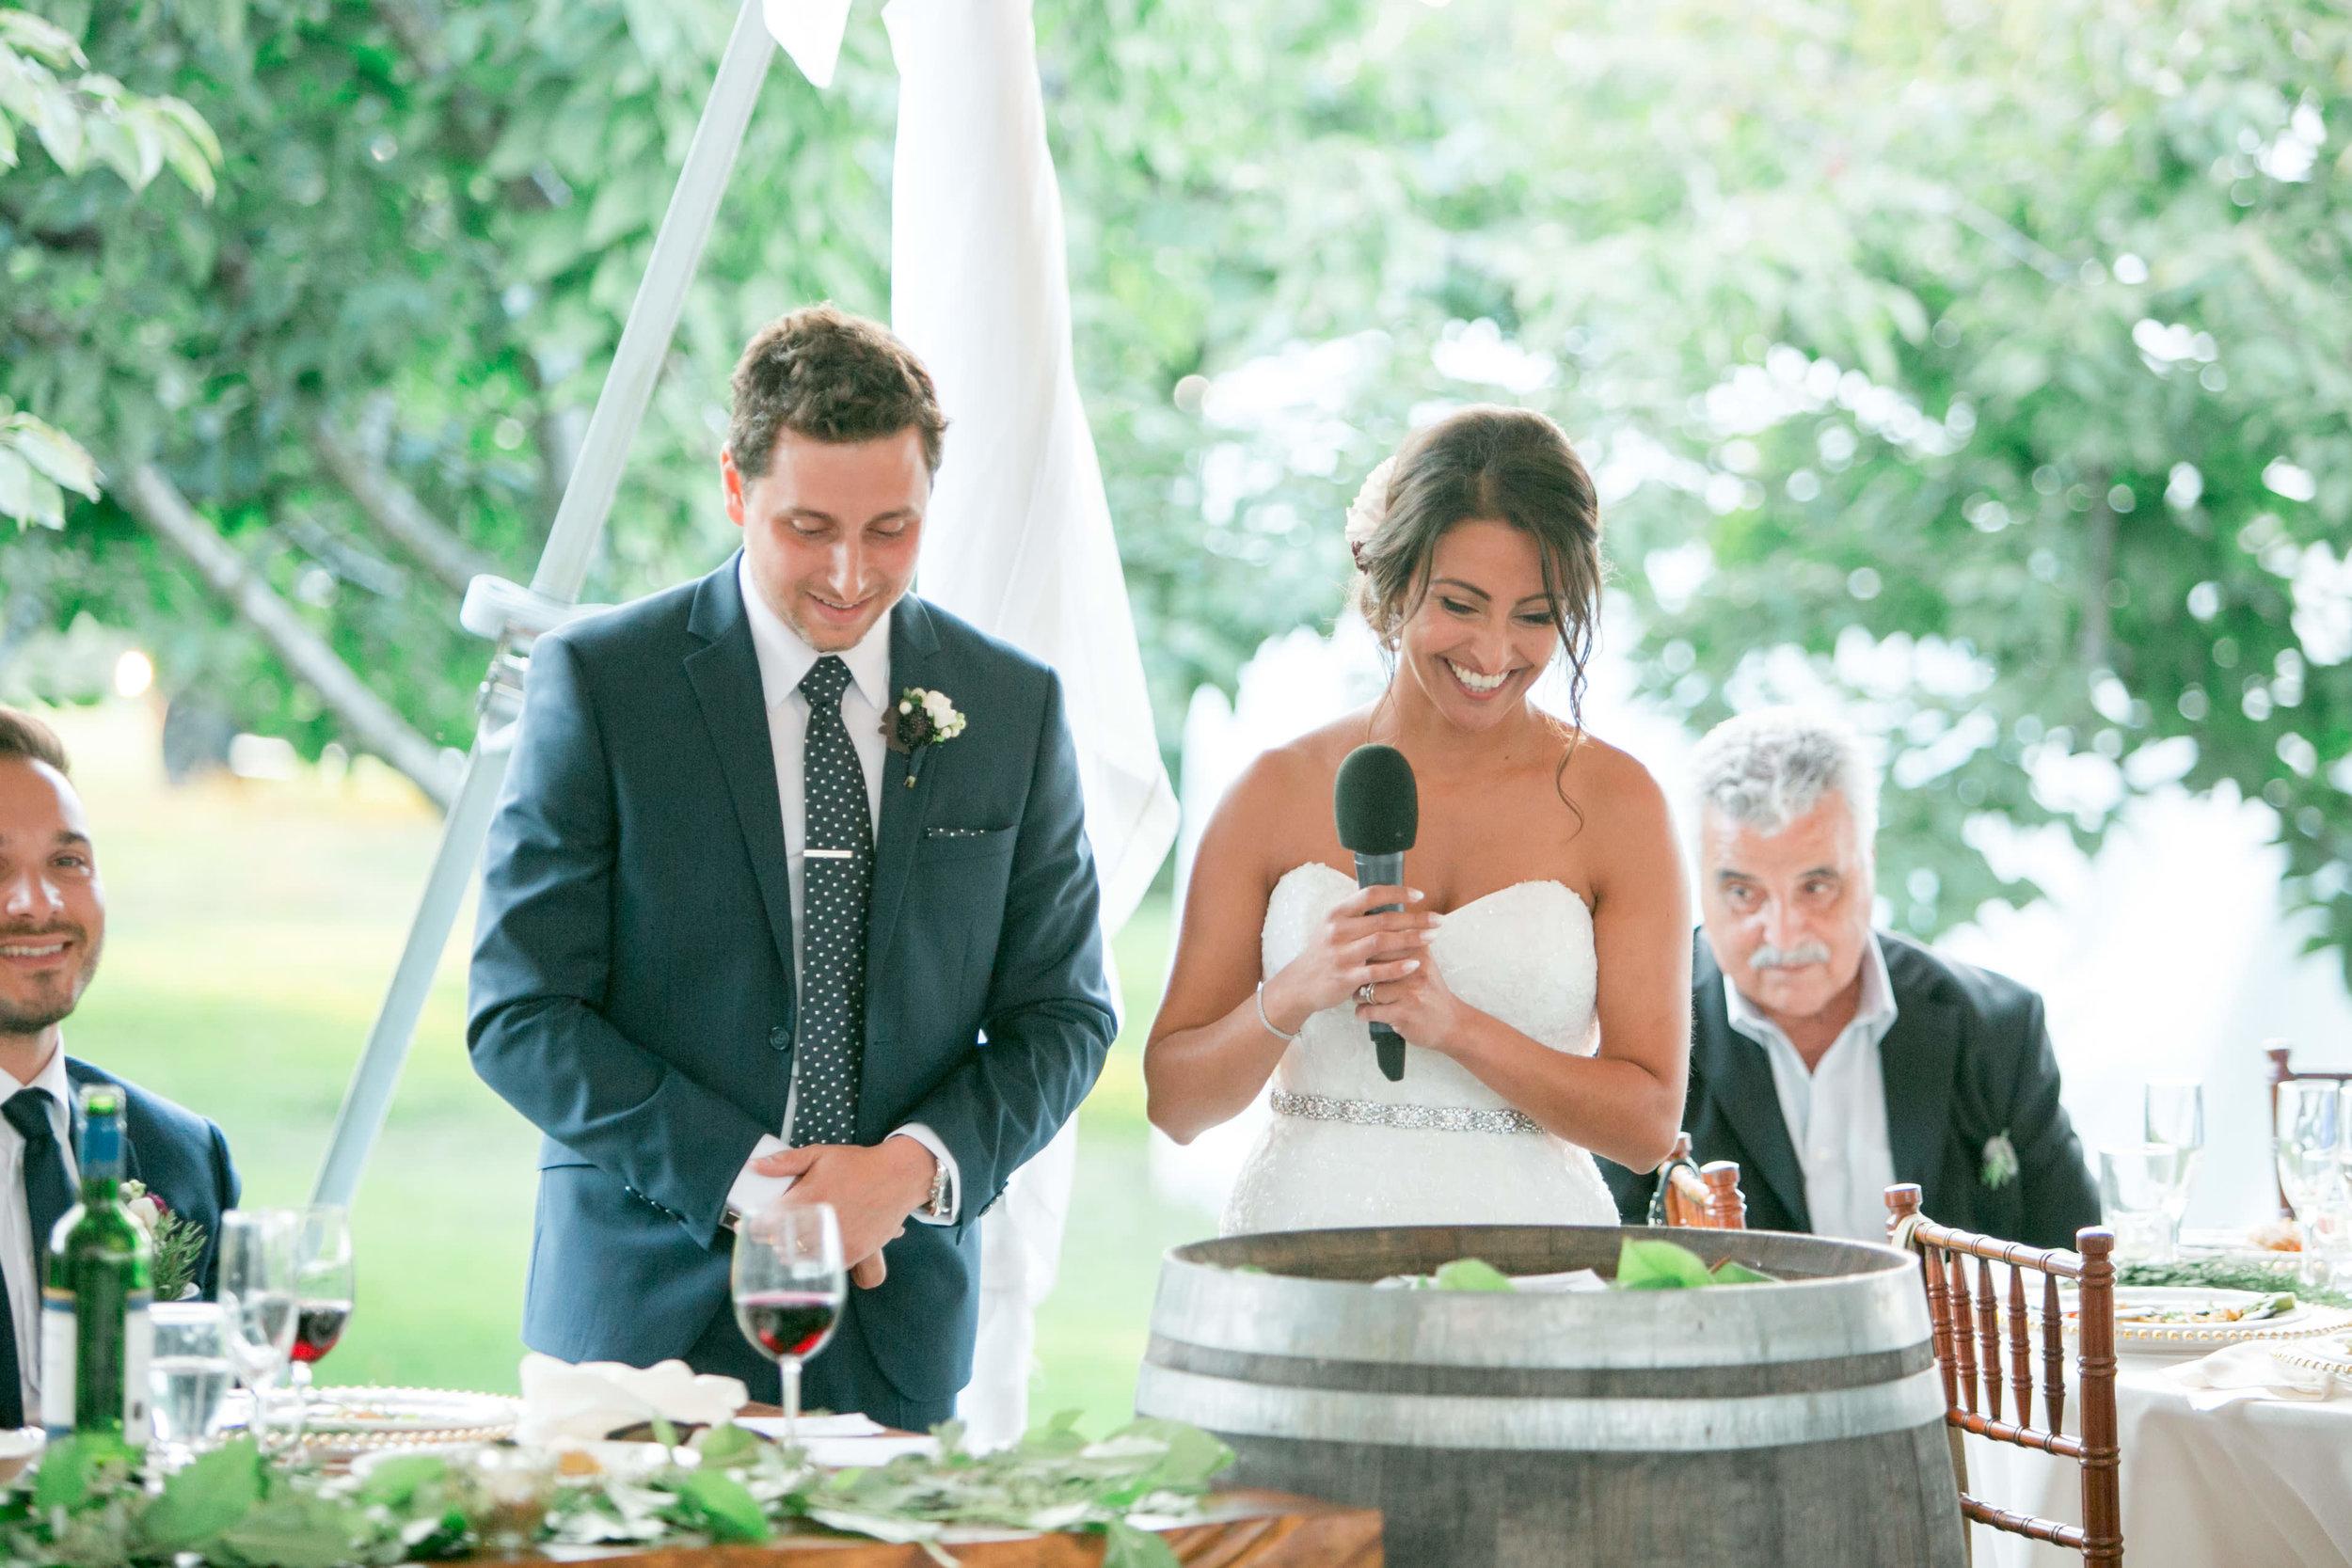 Sabrina___Jonathan_Wedding___High_Res._Finals_Daniel_Ricci_Weddings_602.jpg